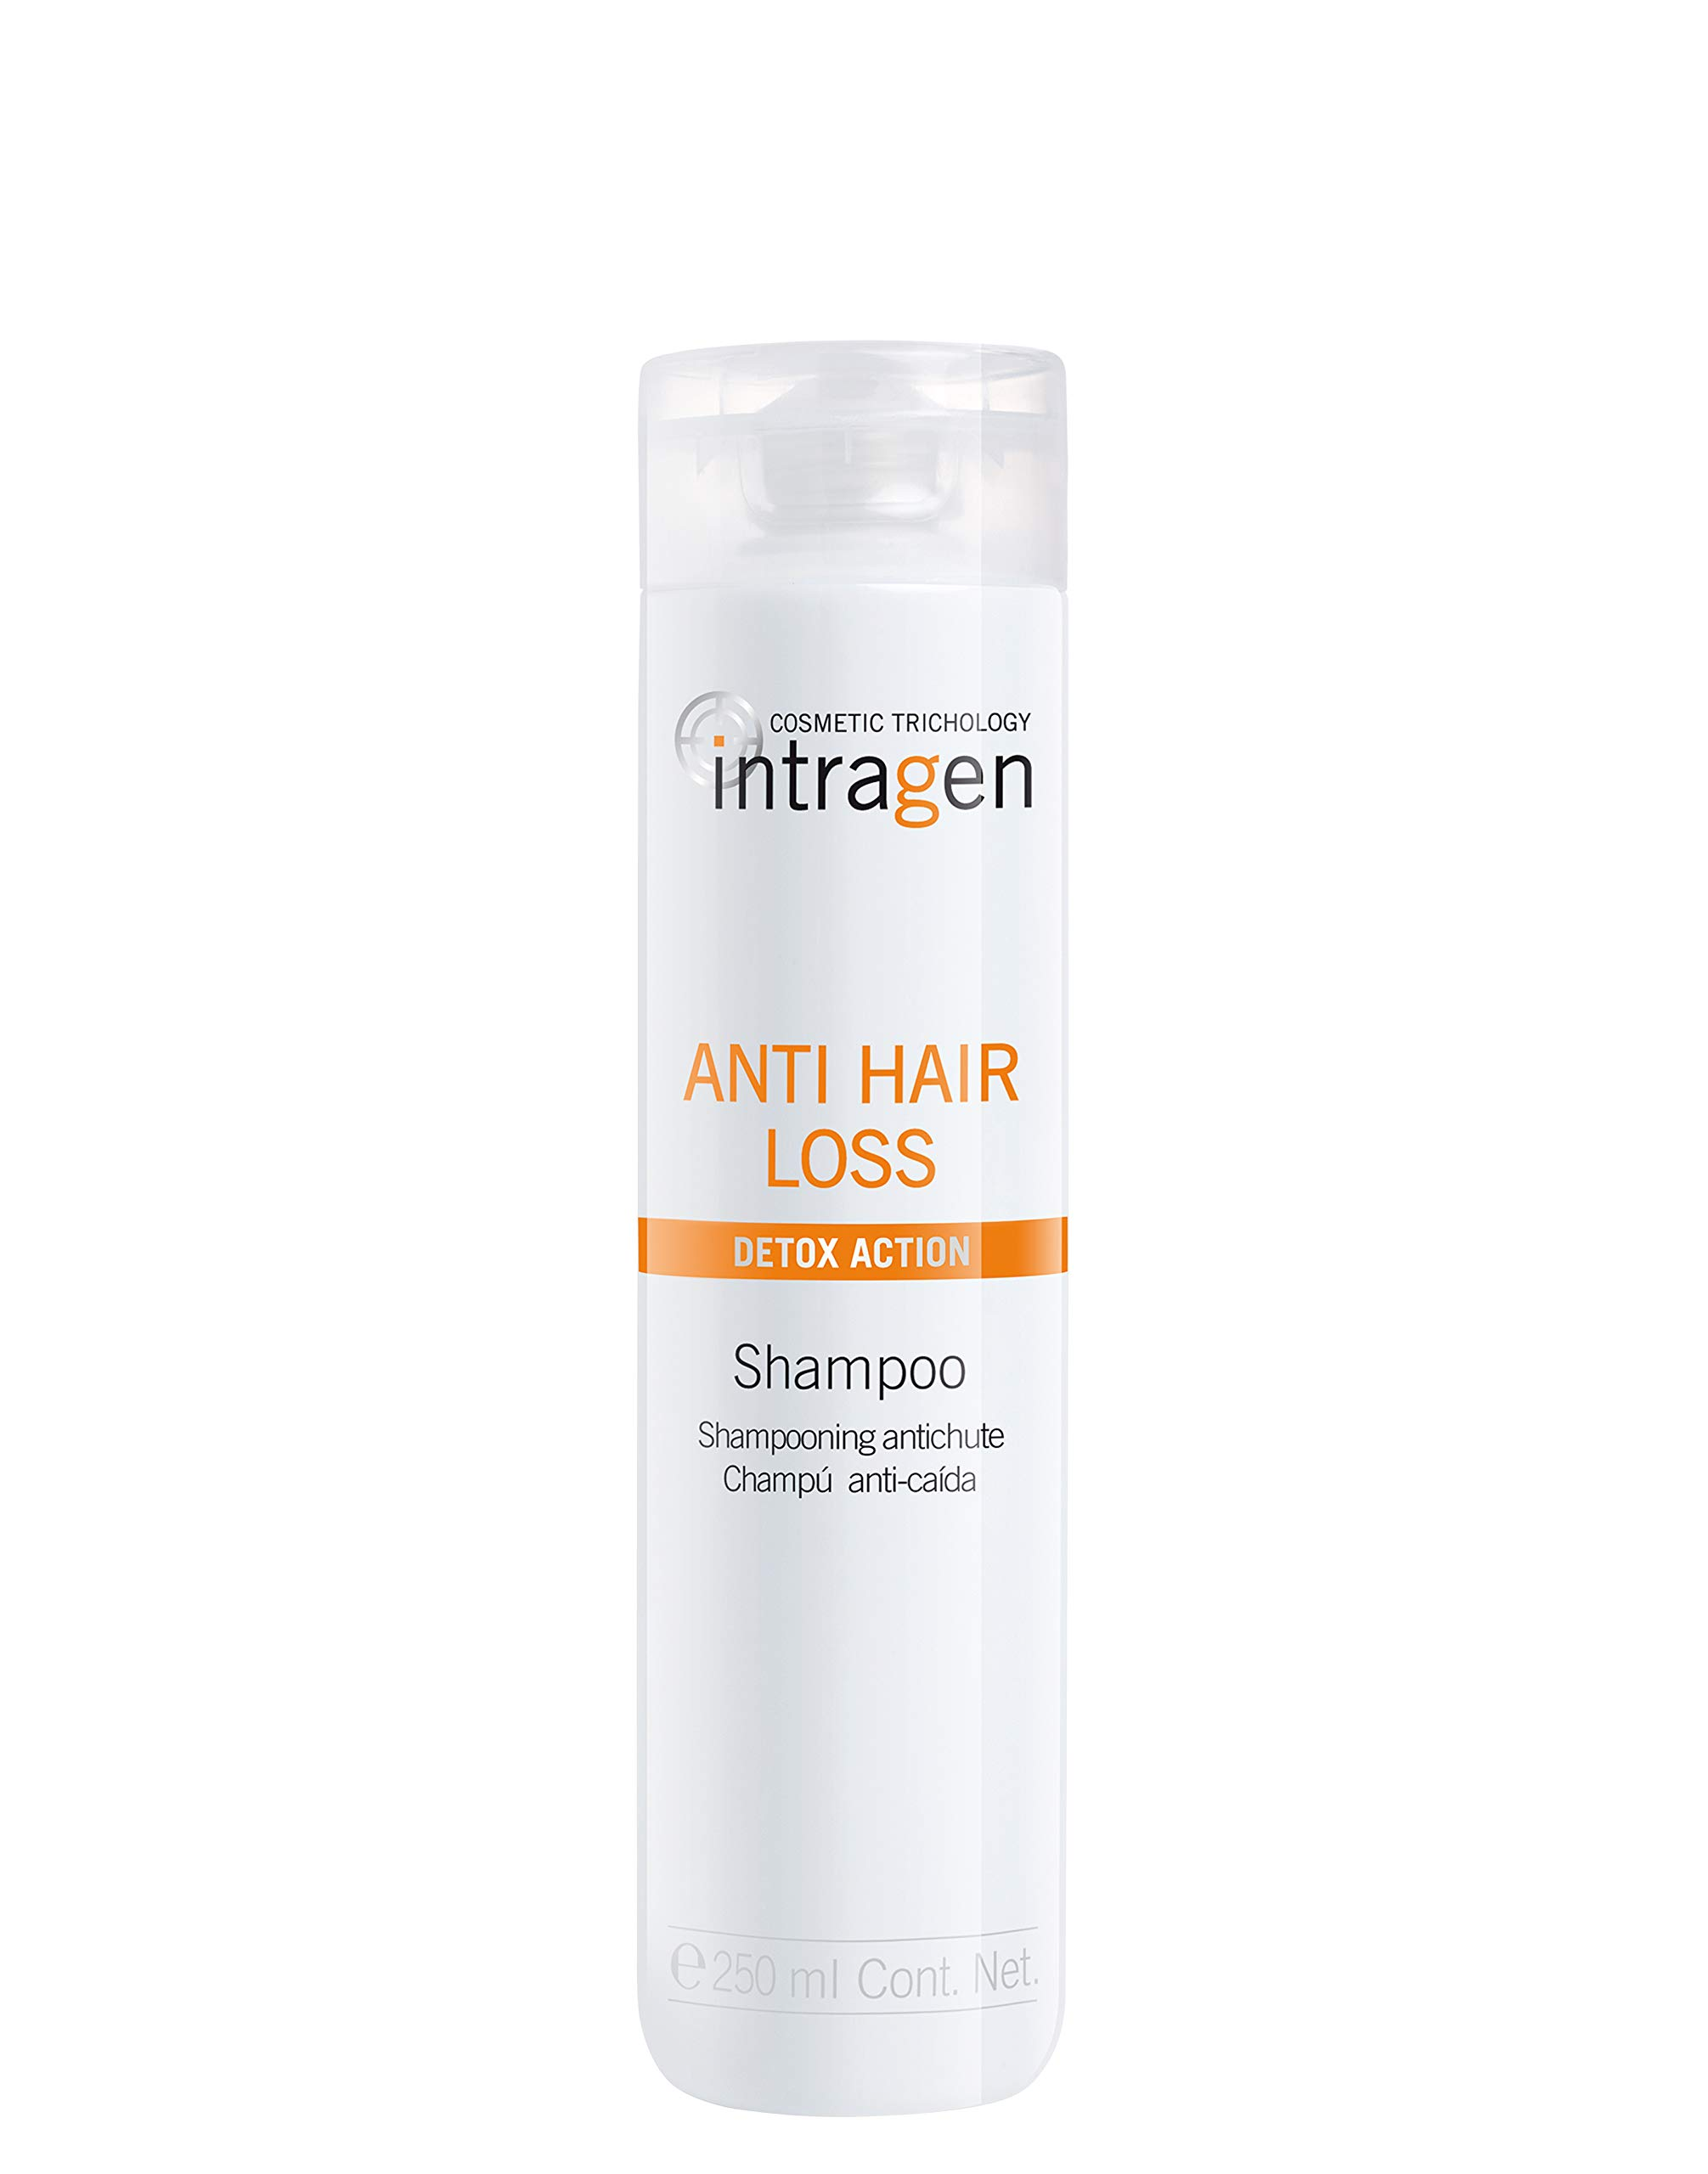 Intragen Anti hair loss - Champú anti-caida, 250 ml product image